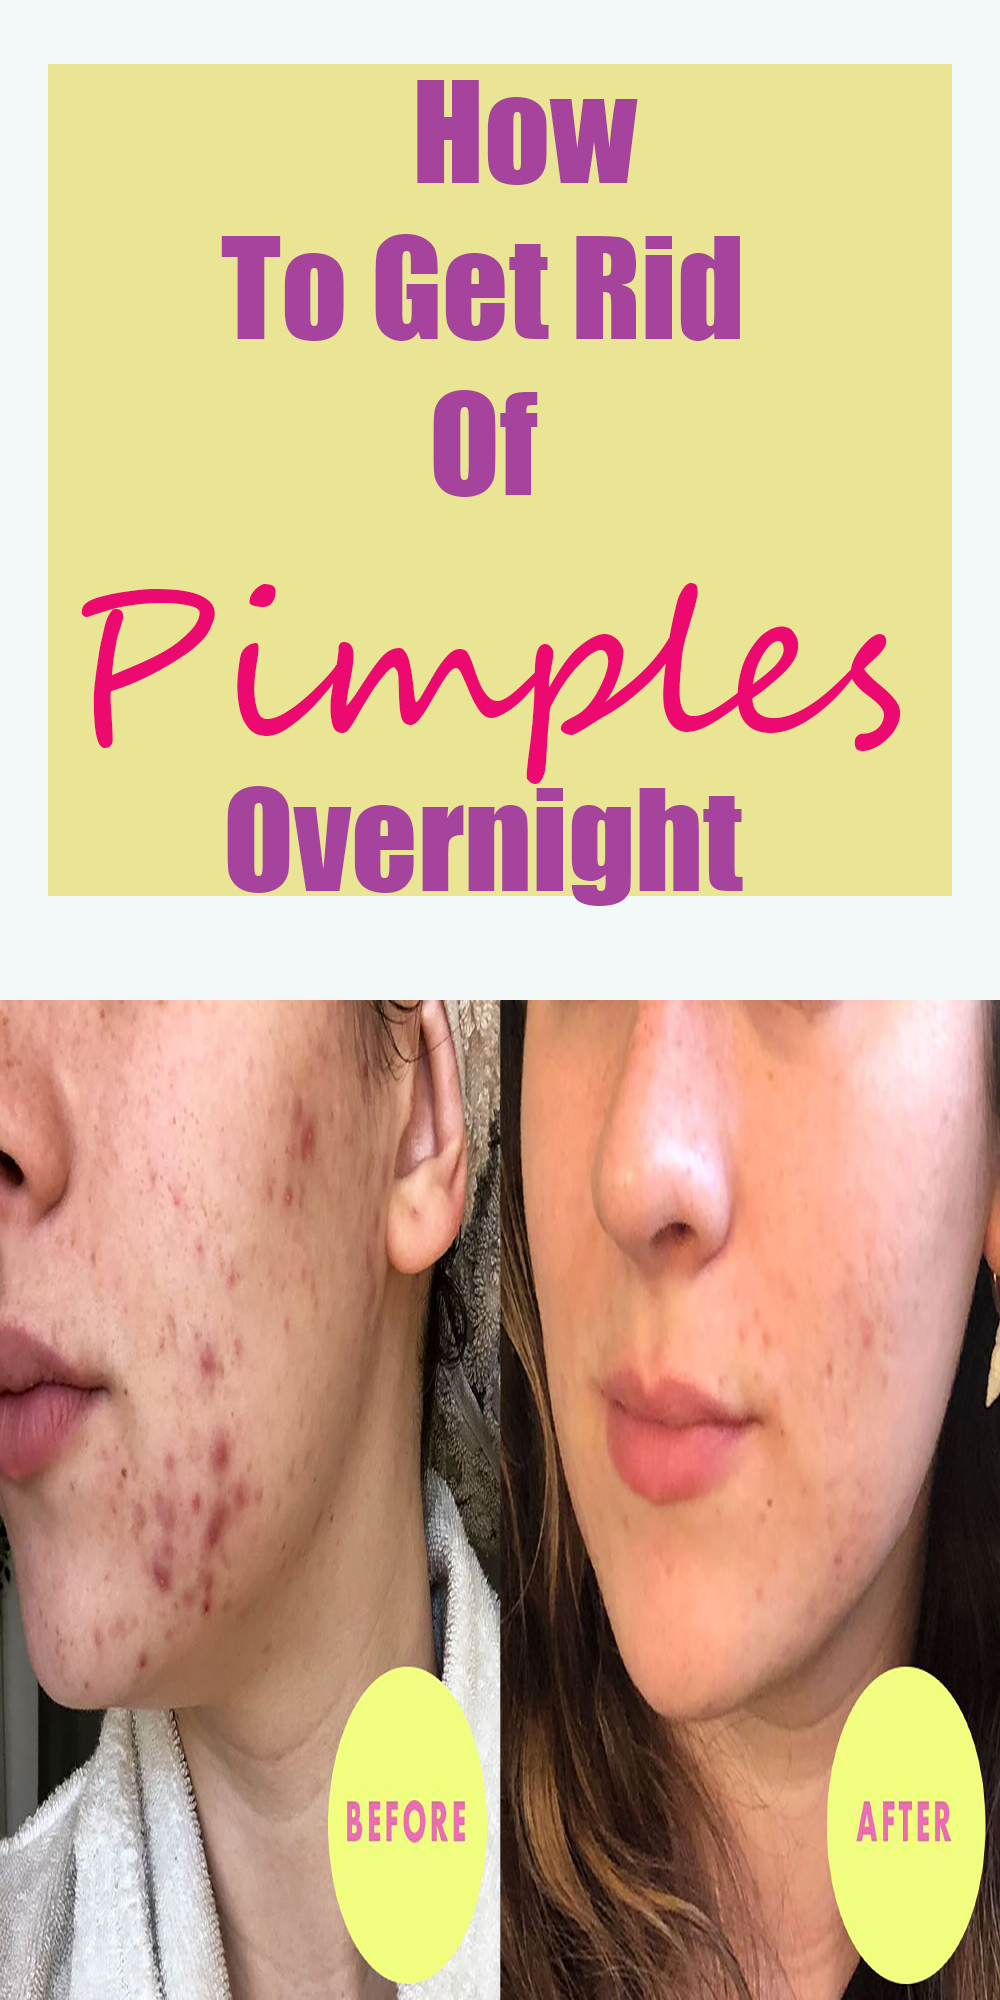 How To Get Rid Of Pimples Instantly How To Get Rid Of Pimples Overnight In 2020 How To Get Rid Of Pimples Pimples Overnight Pimples